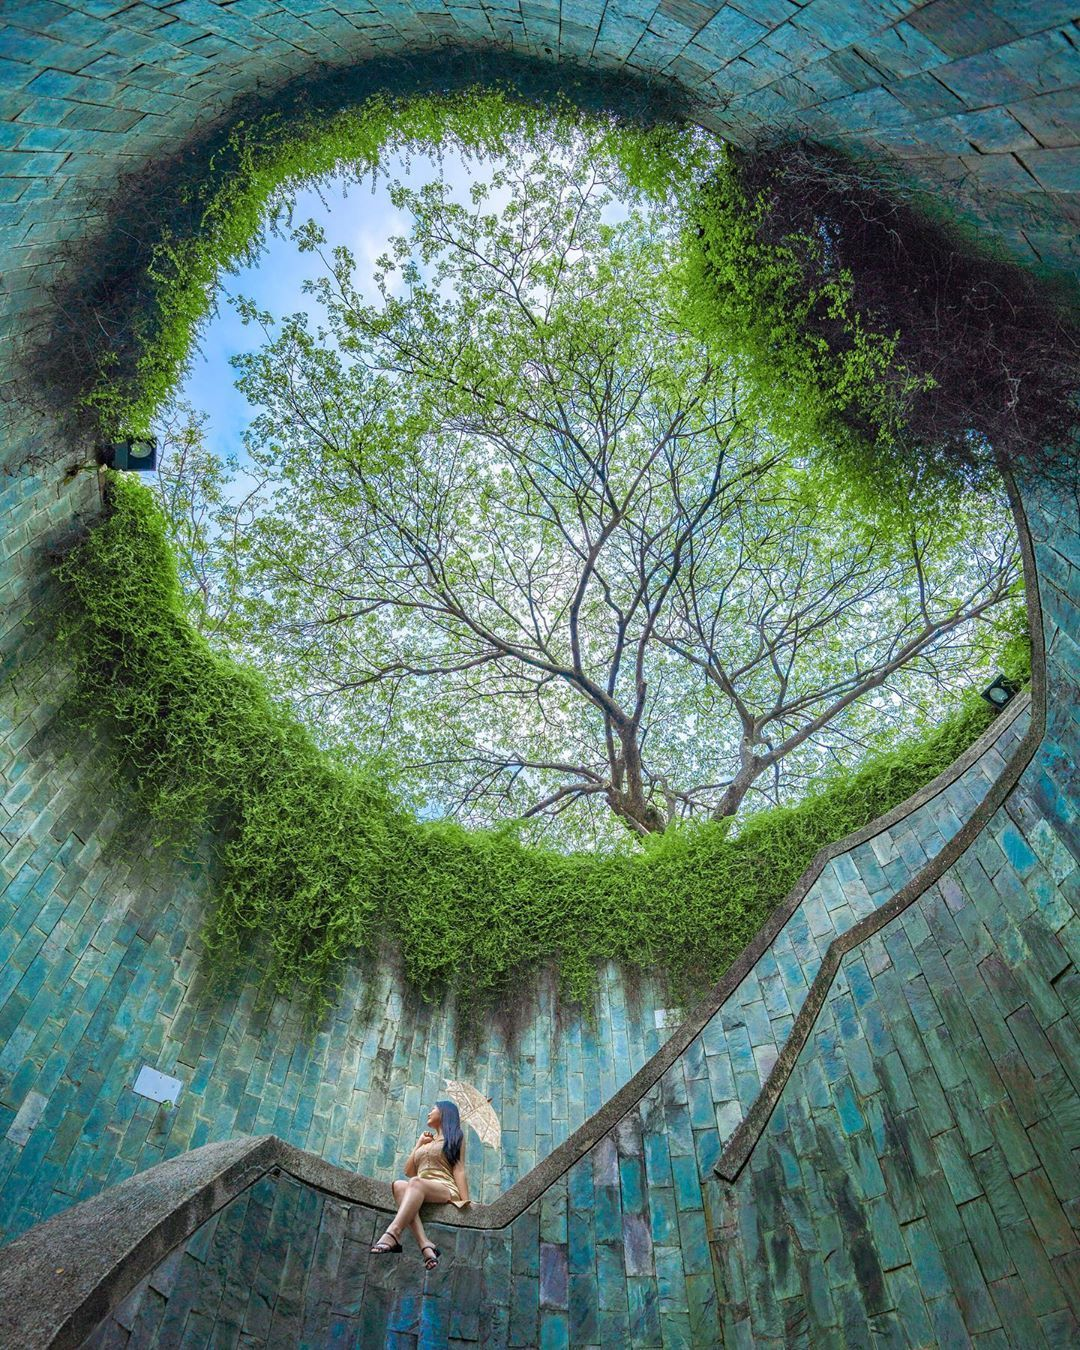 50 Instagrammable Places In Singapore For Viral Content In 2020 Best Travel Insurance Beautiful Nature Instagrammable Places